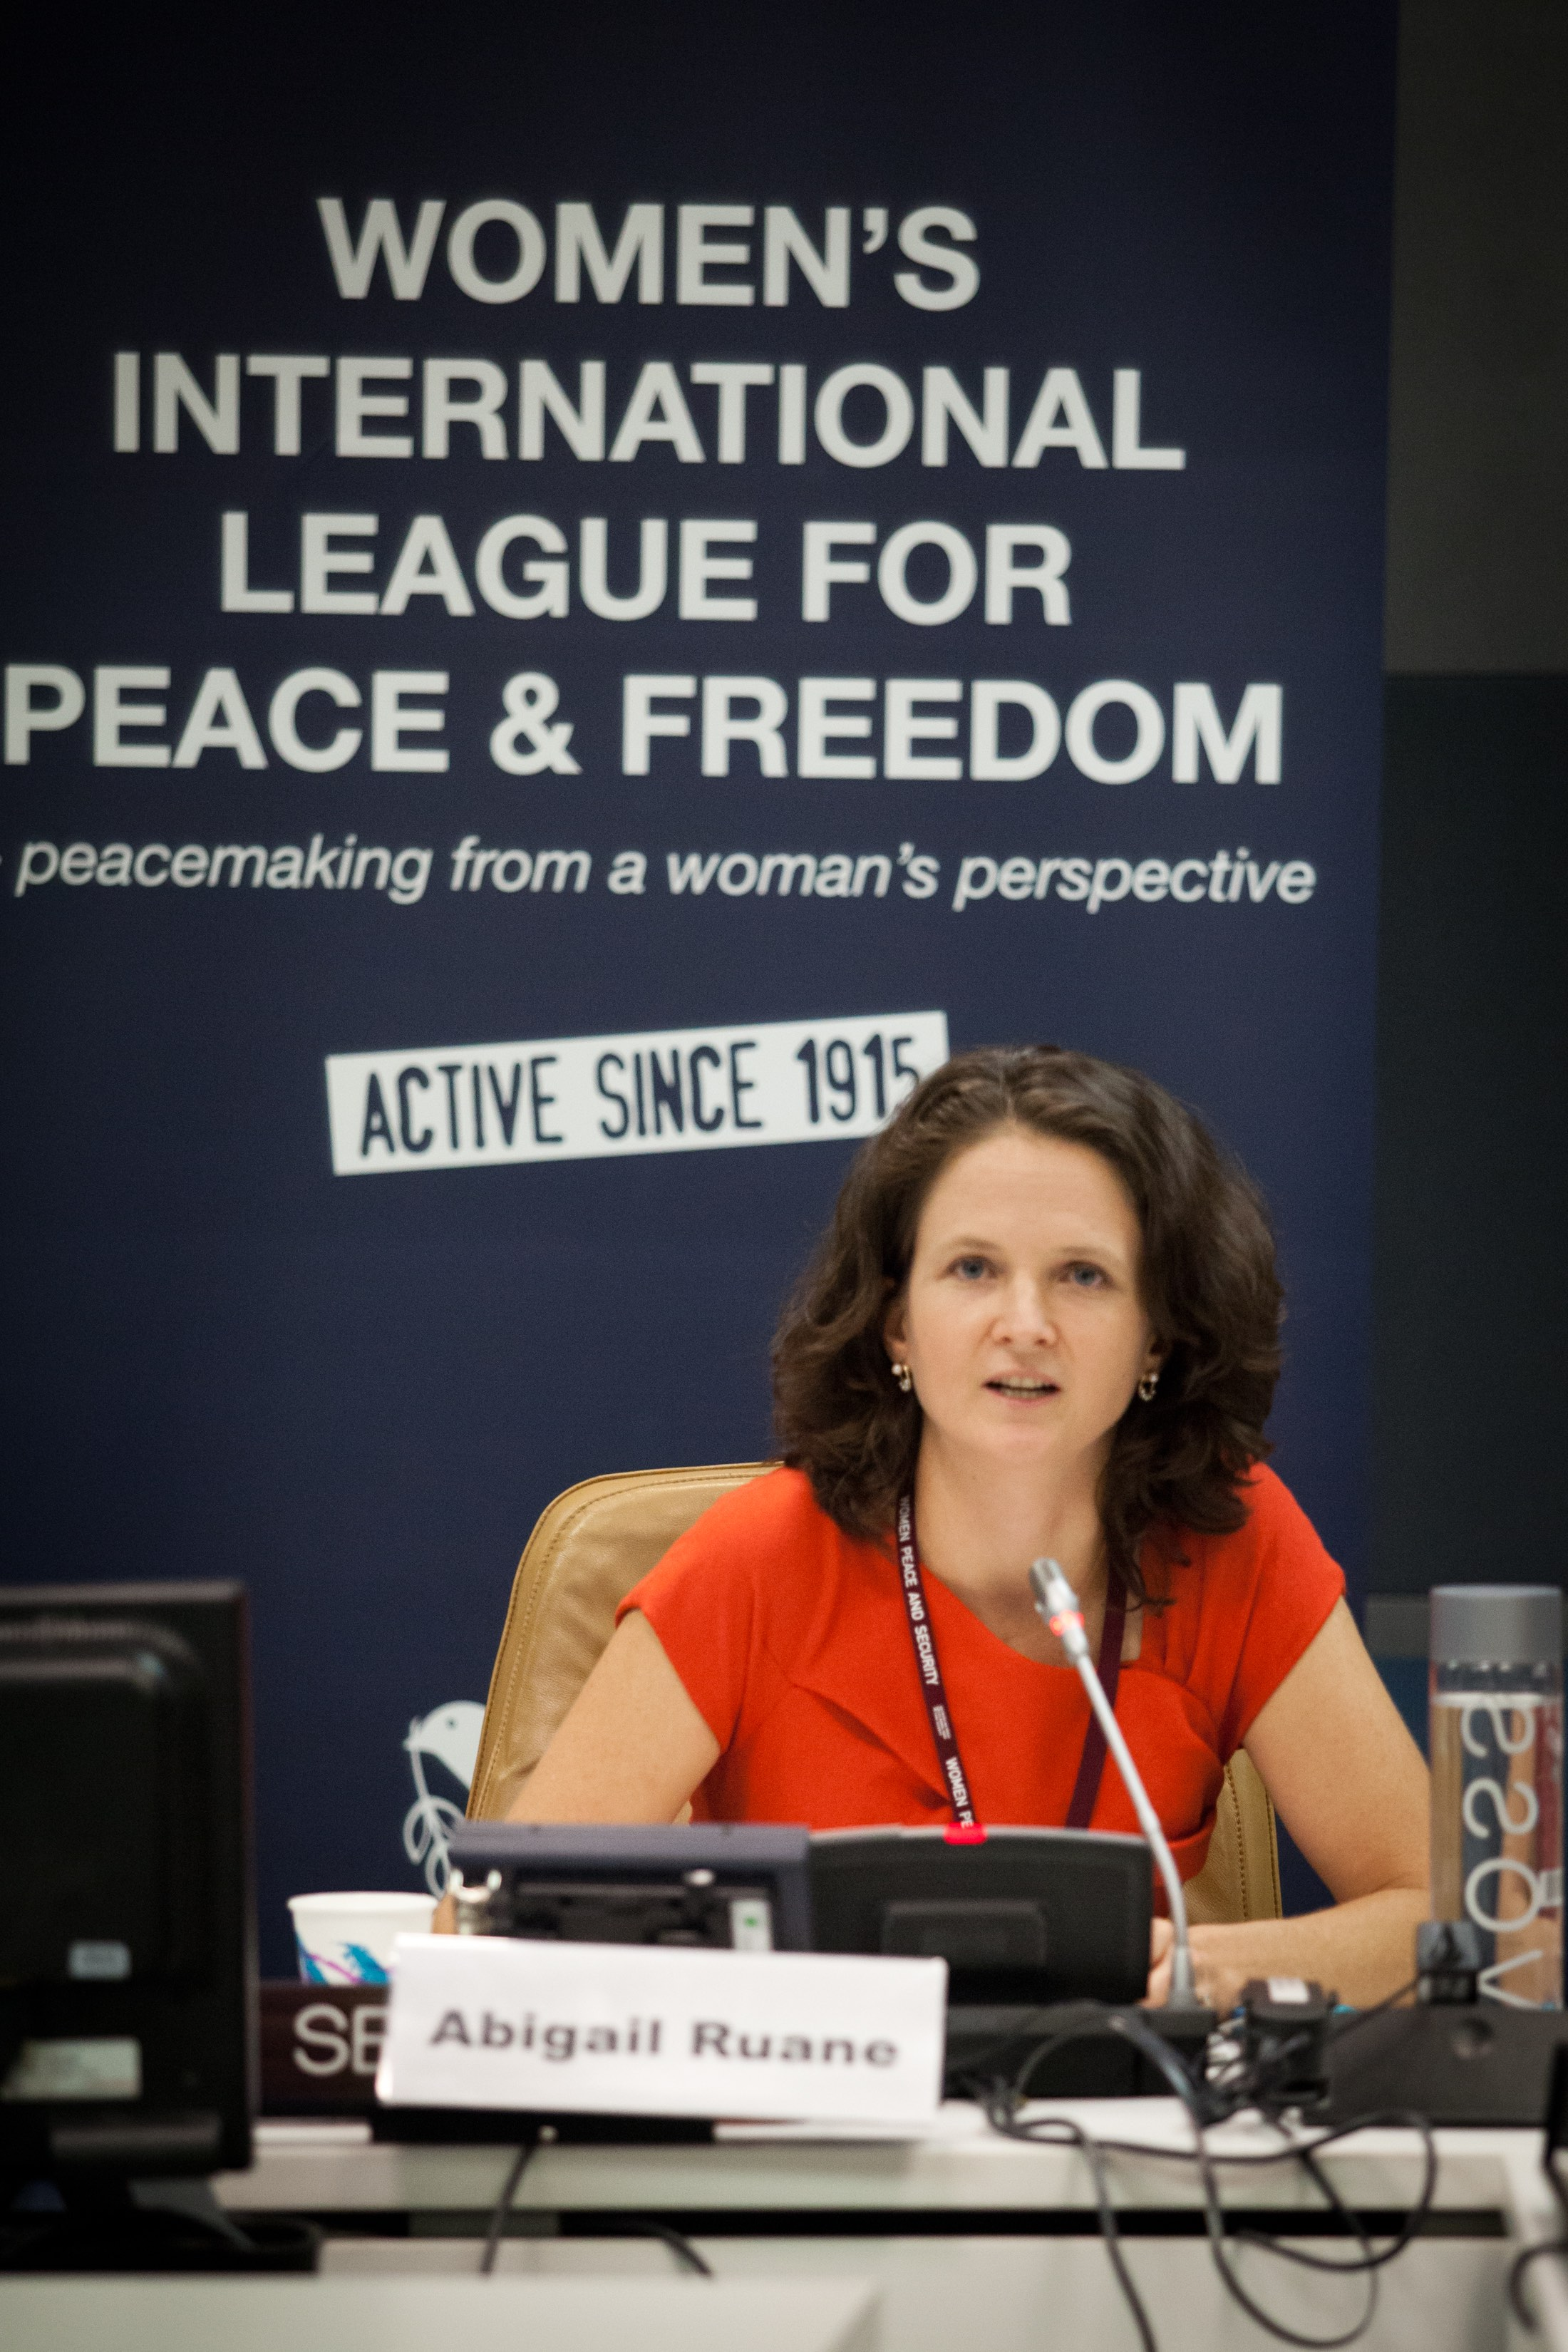 Abigail Ruane, Programme Manager of PeaceWomen